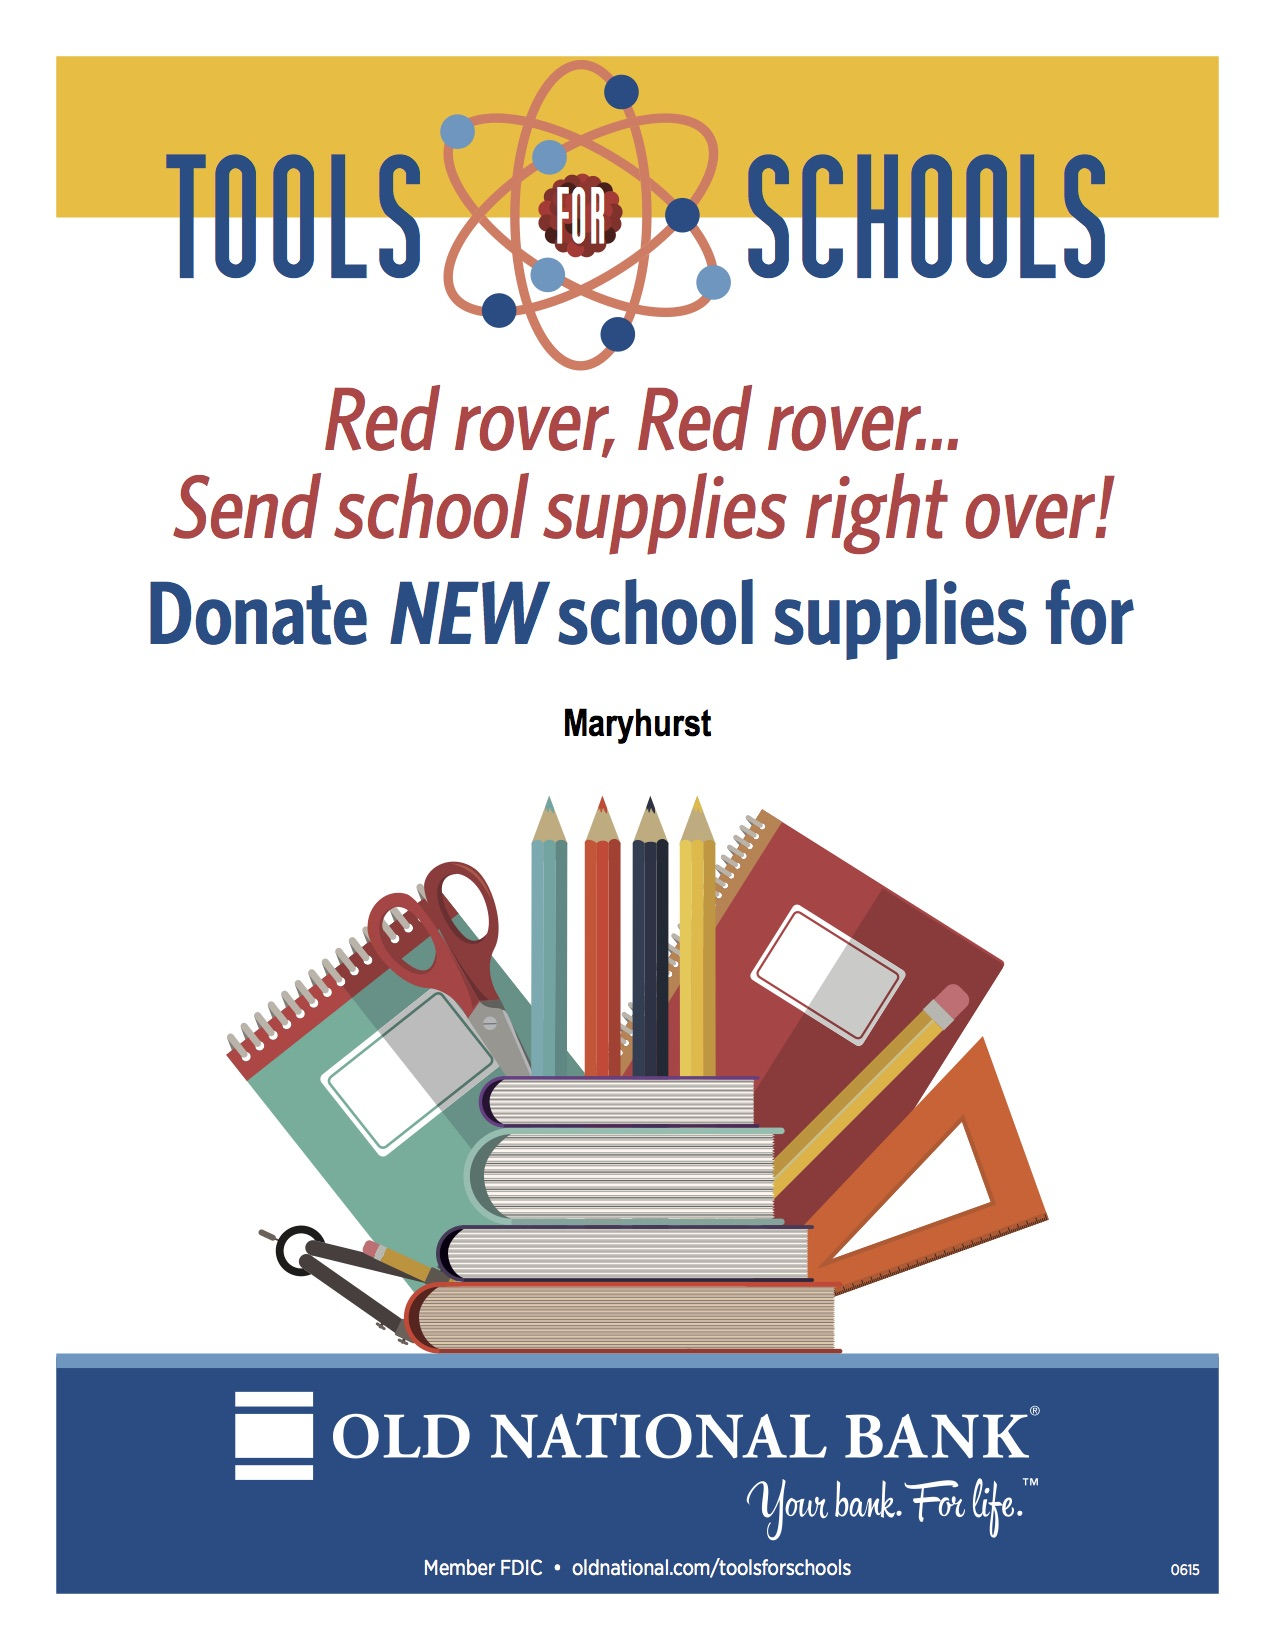 Old National Bank - Tools for Schools